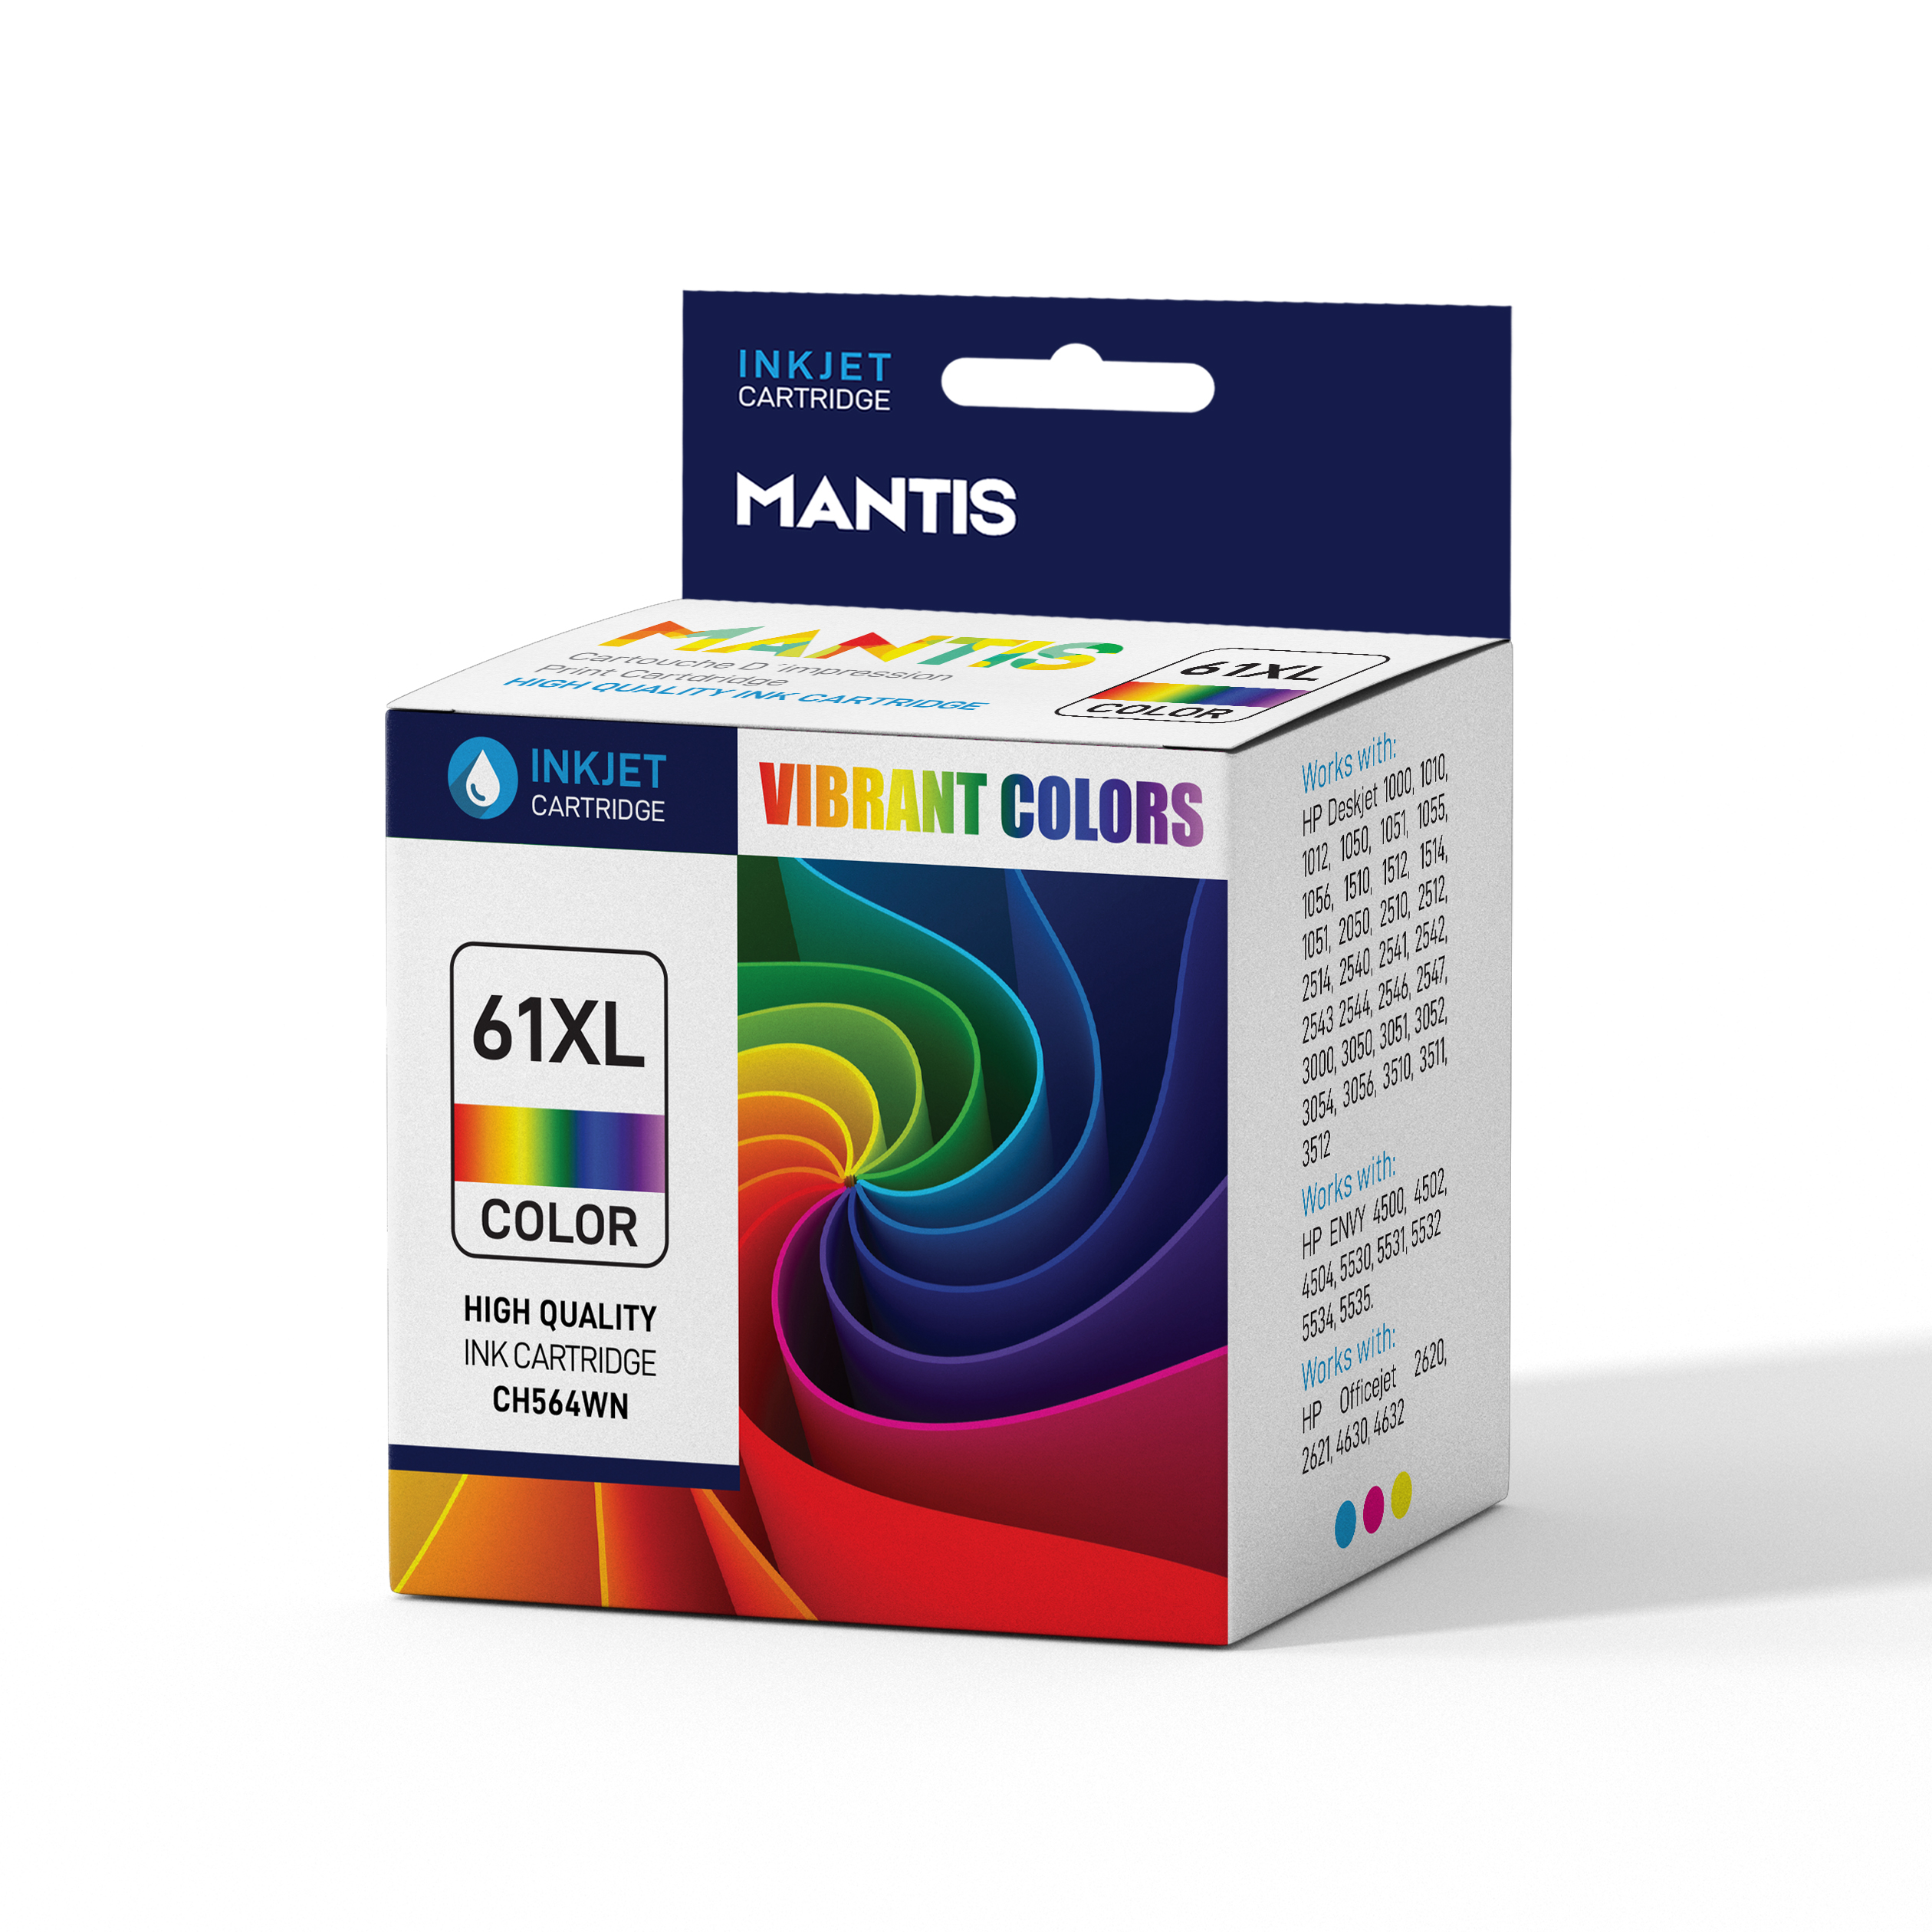 HP 61 XL Ink Cartridges | Compatible with HP Deskjet, HP ENVY, and HP  Officejet Printers | 2 Pack Tricolor Ink